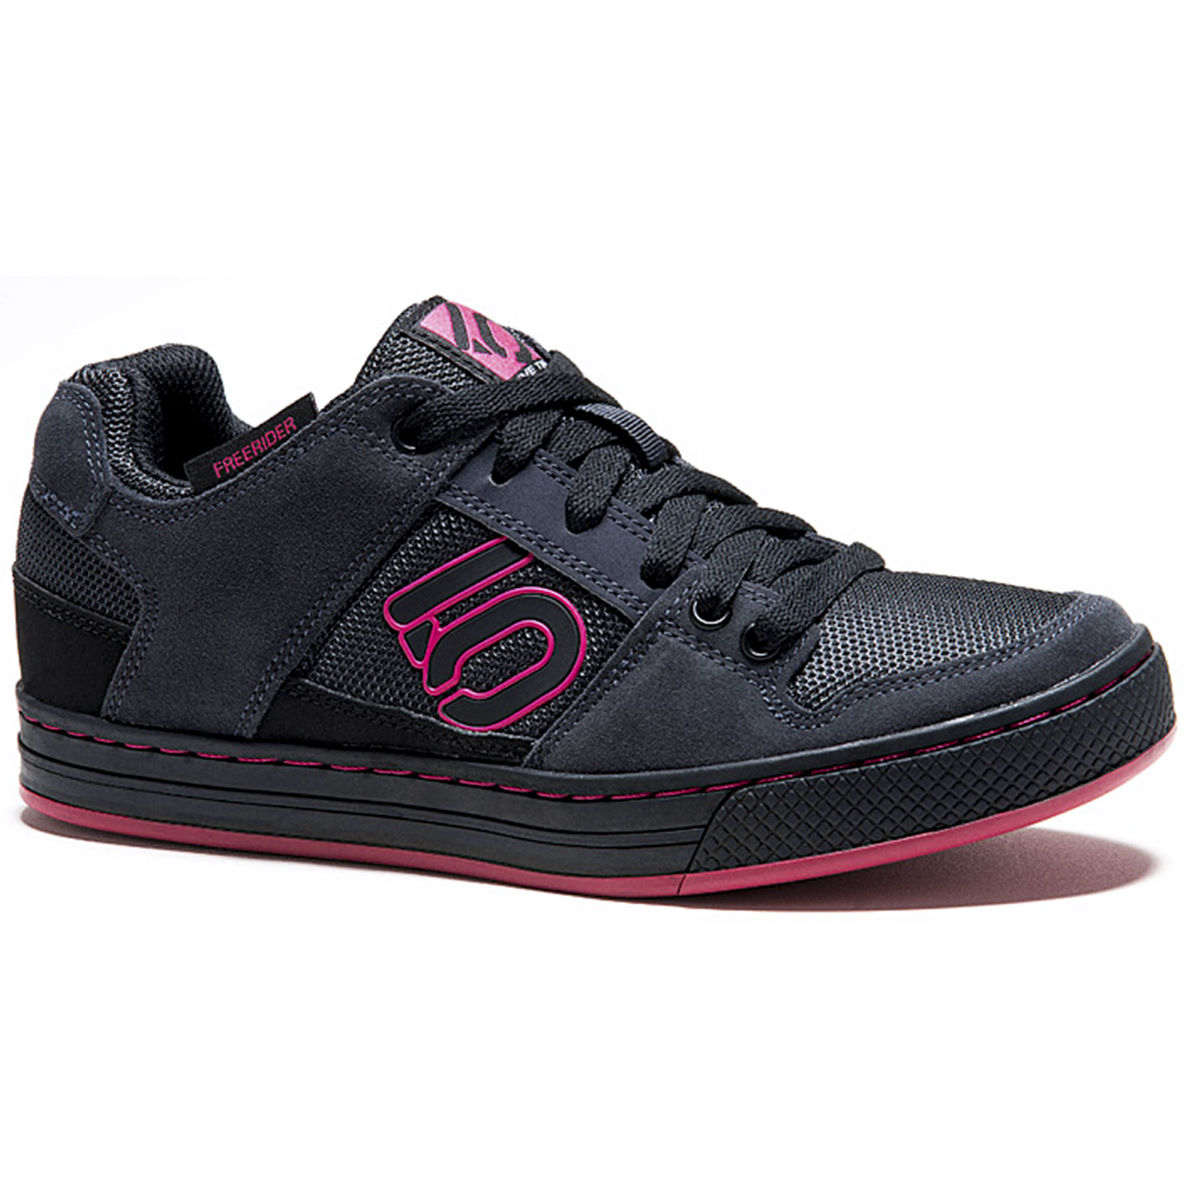 Chaussures VTT Femme Five Ten Freerider - EU 41.5 Black - Berry